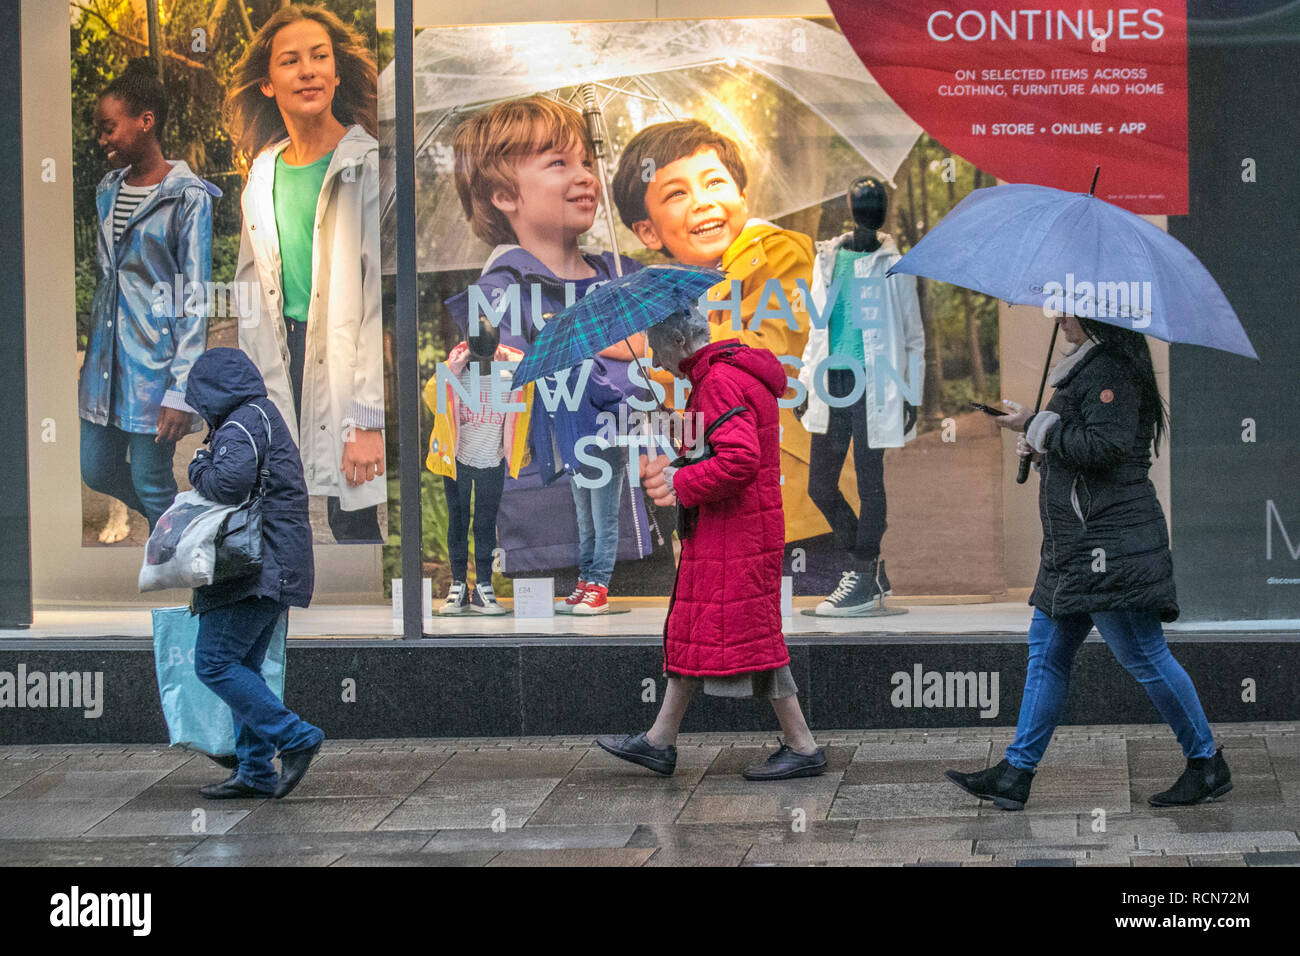 Preston, Lancashire, 16th Jan 2019. UK Weather. Wet & windy start to the day in the city centre. Rain is moving east across England with heavy showers in the north and west, turning increasingly wintry. People assing M&S sale window, discounts, clearance, reductions, banner, womens fashions, display, as the Sale continues. Credit: MediaWorldImages/Alamy Live News - Stock Image